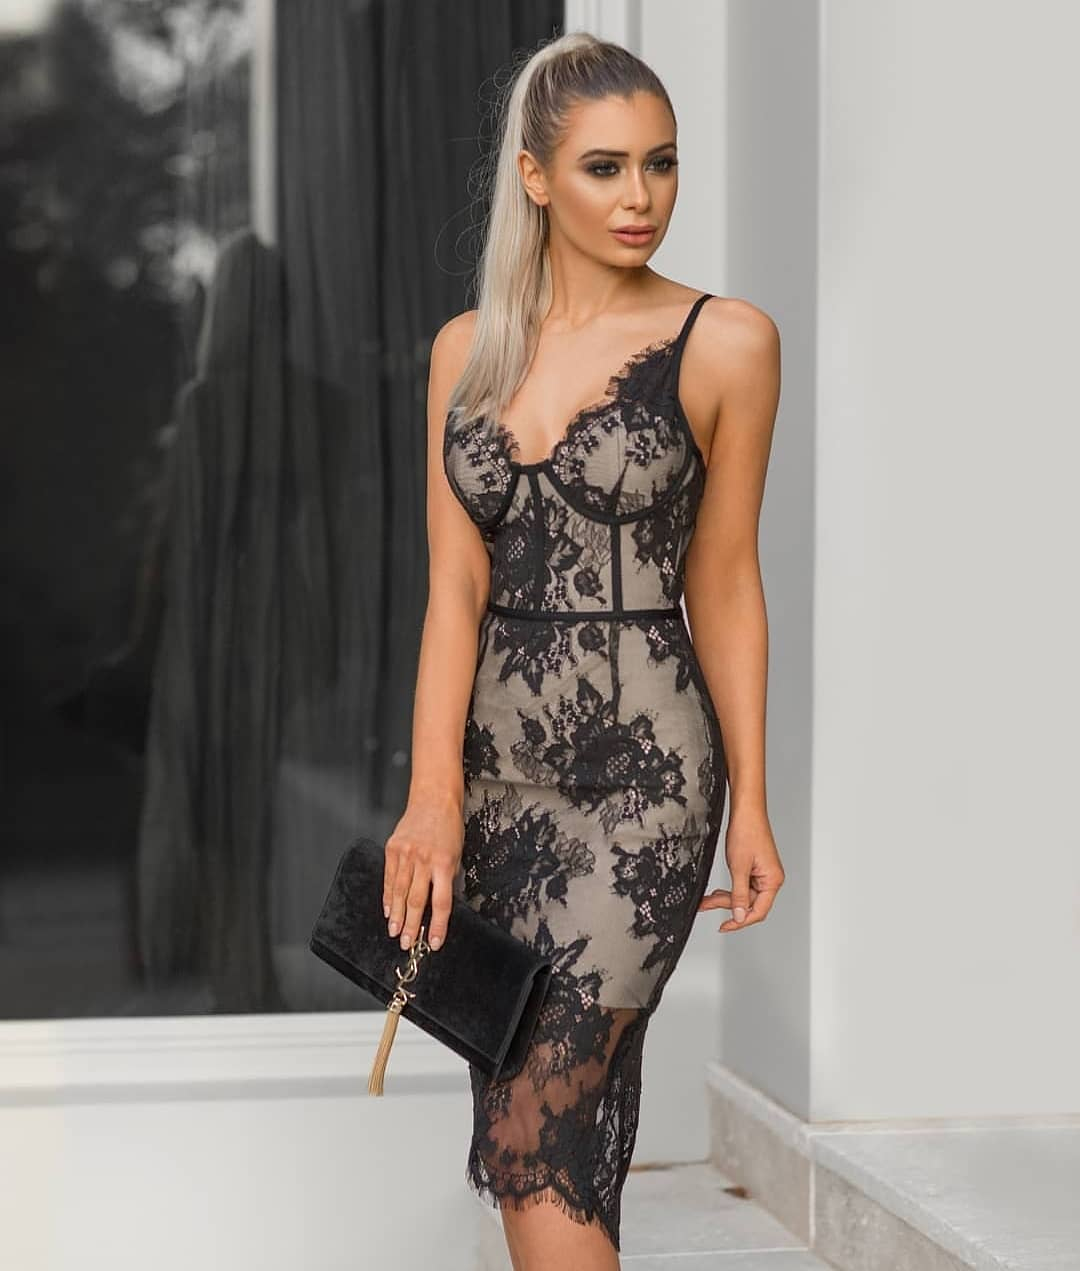 Slim Sheer Black Lace Dress With Spaghetti Straps For Summer 2019